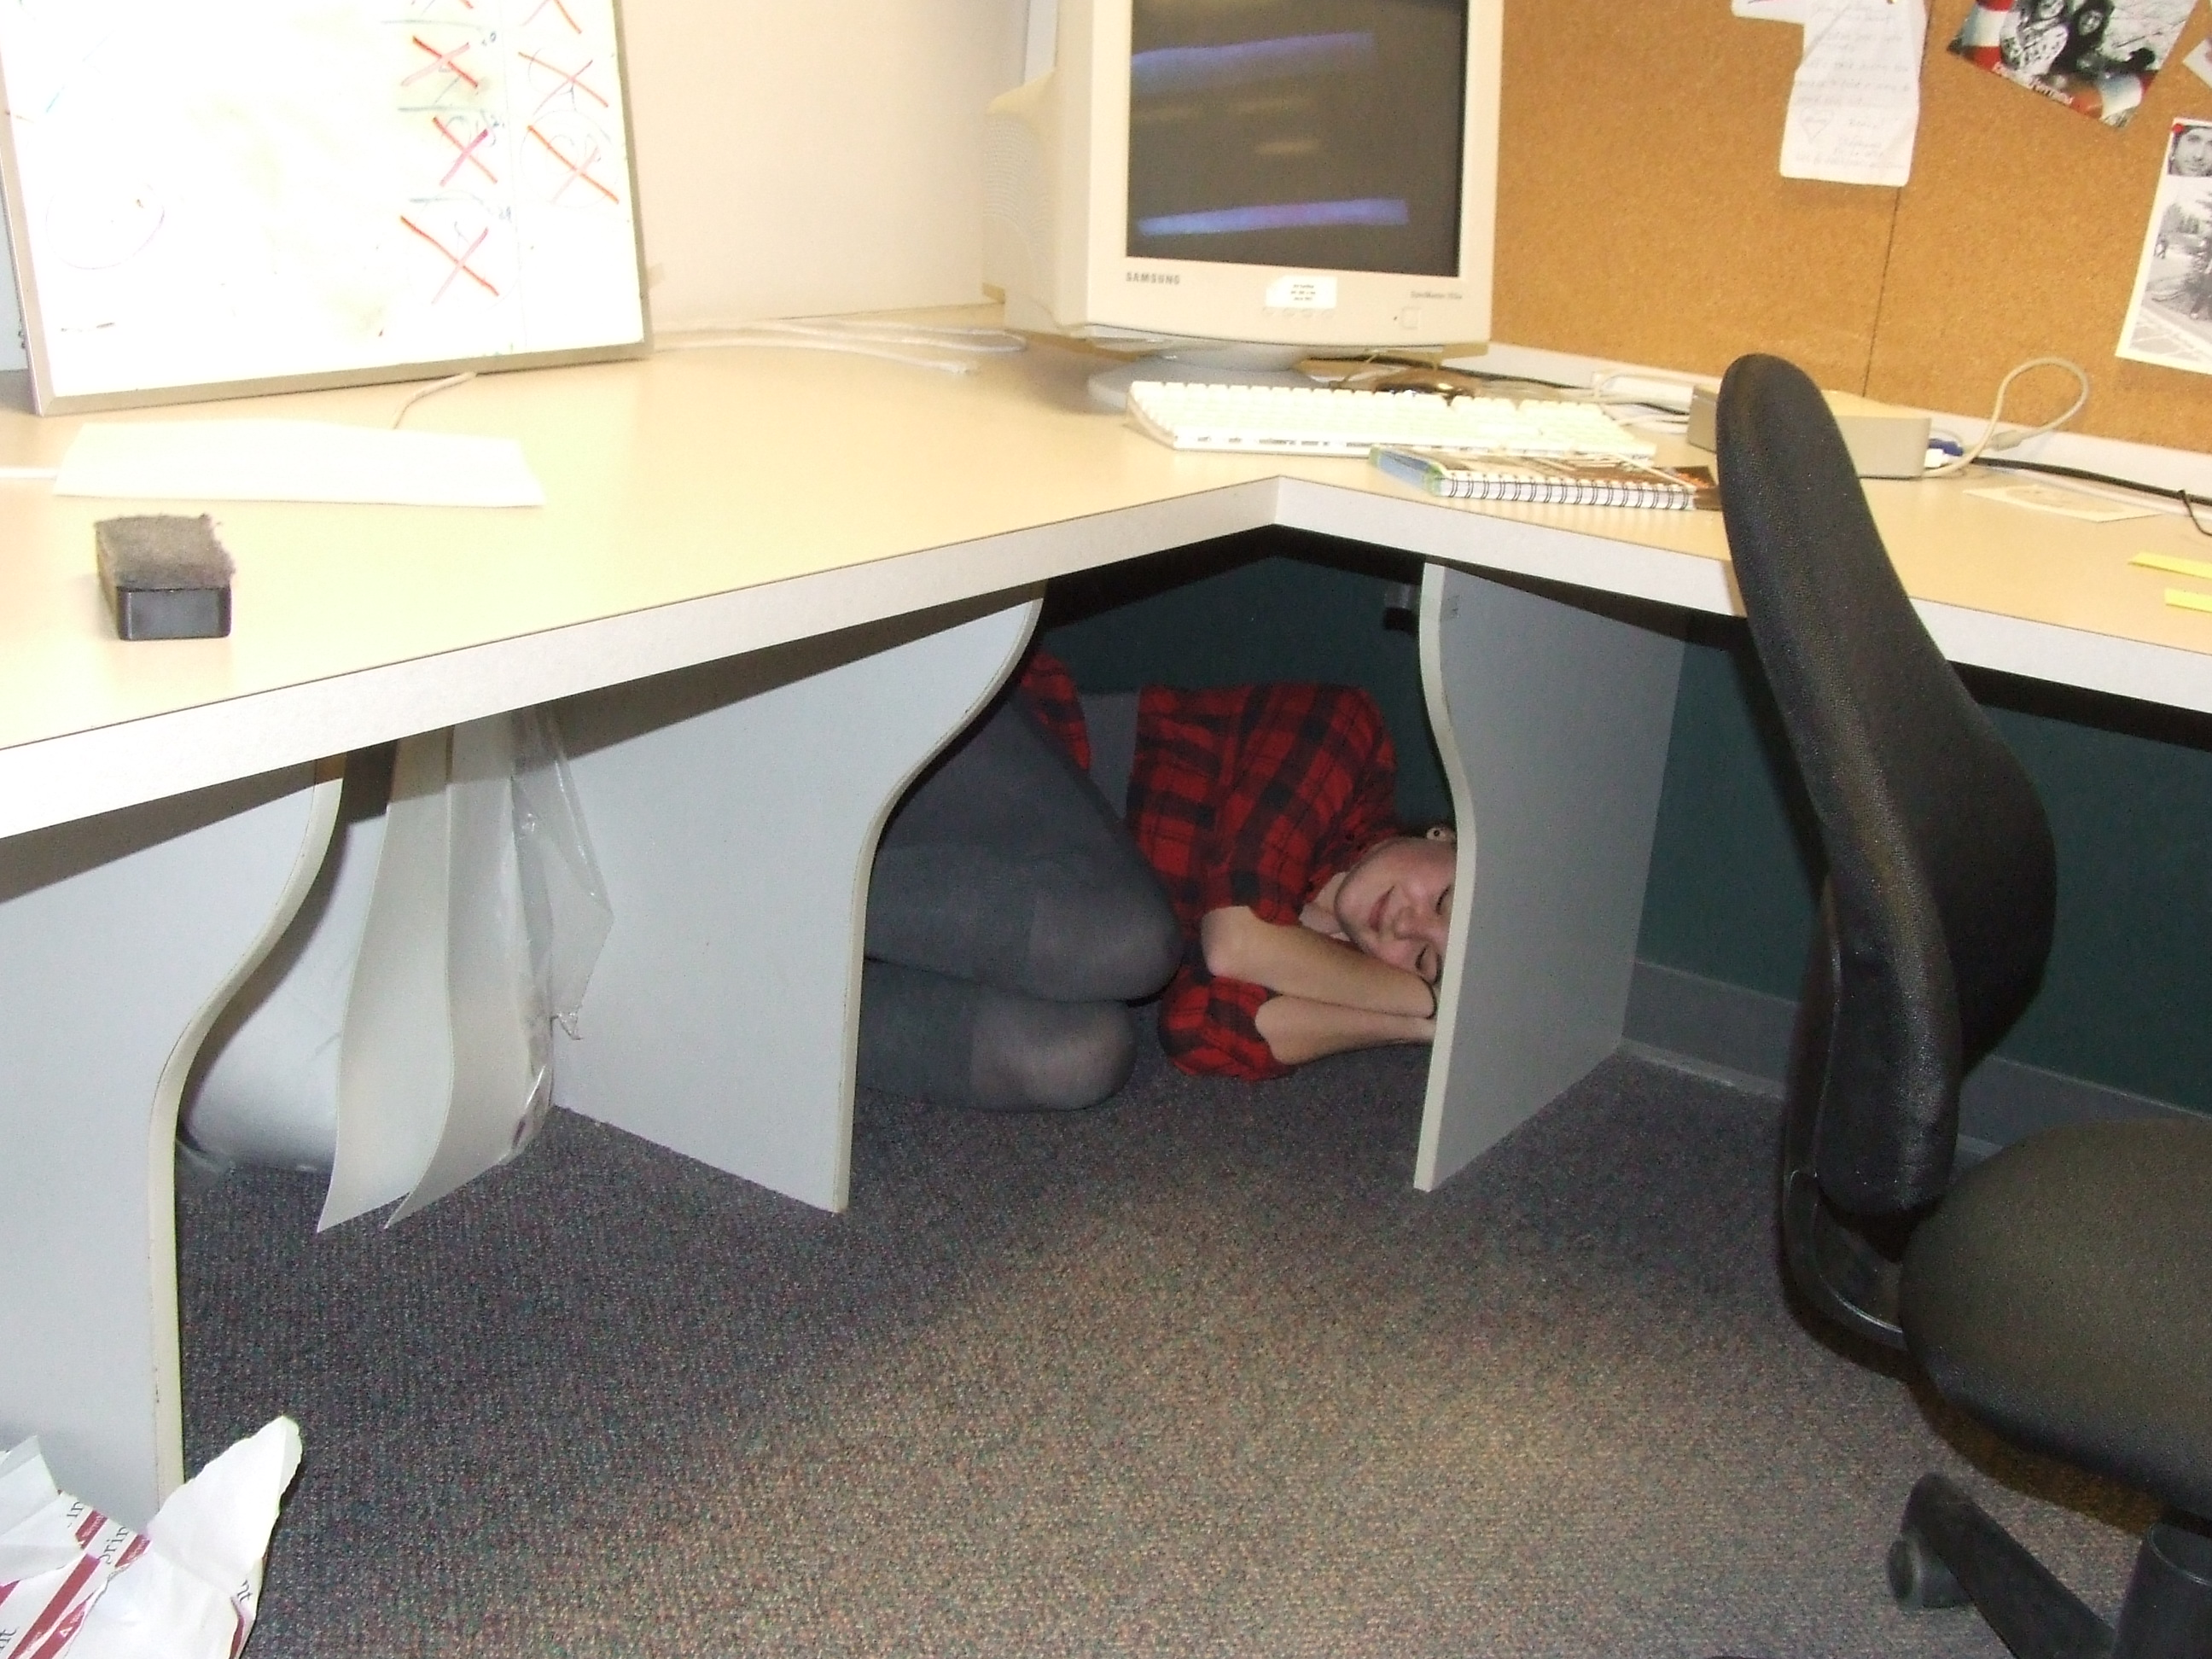 Lady discovered in office corner